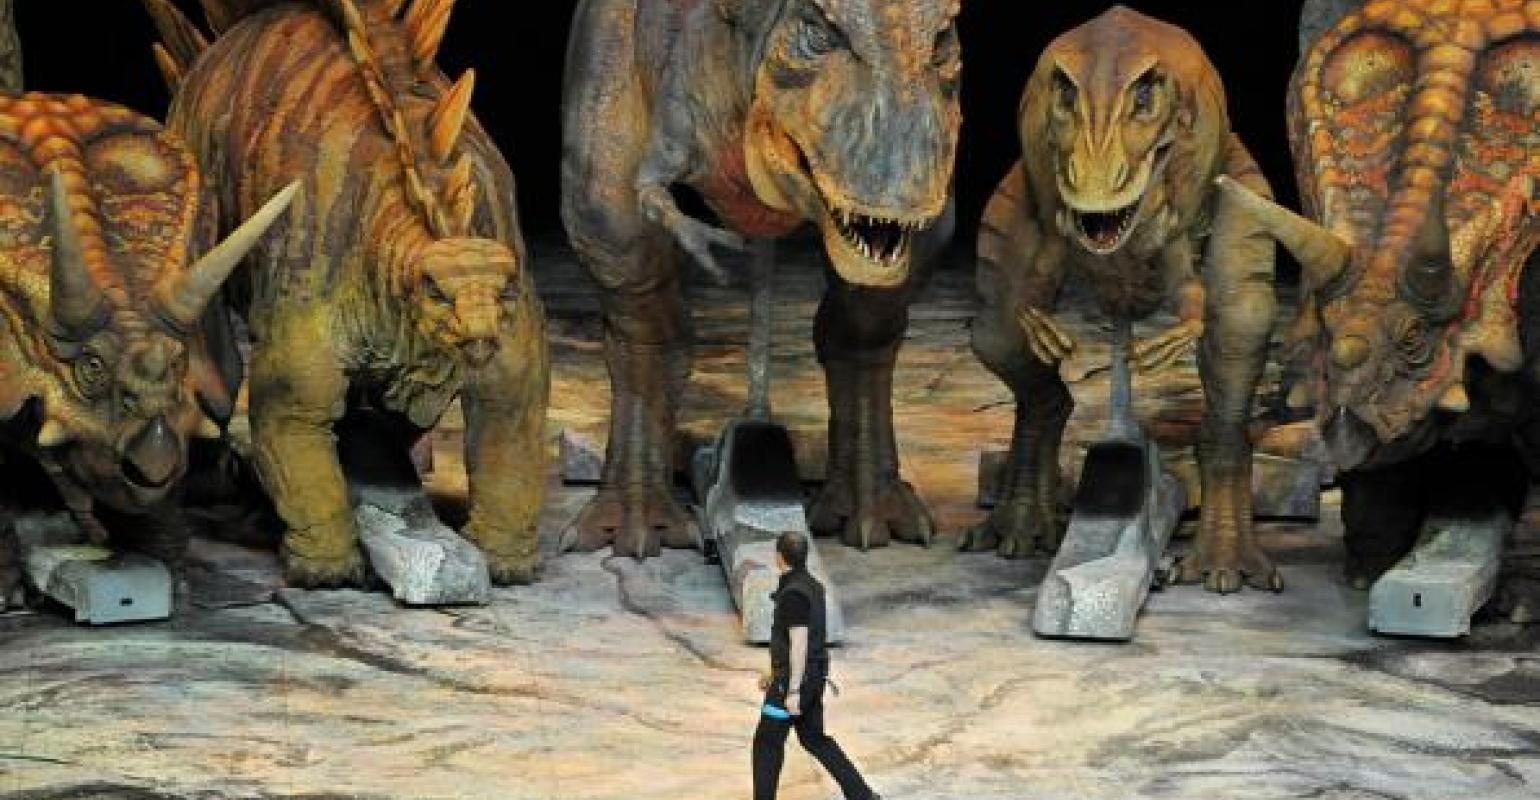 Meet these latest Customized Animatronic Walking Dinosaurs